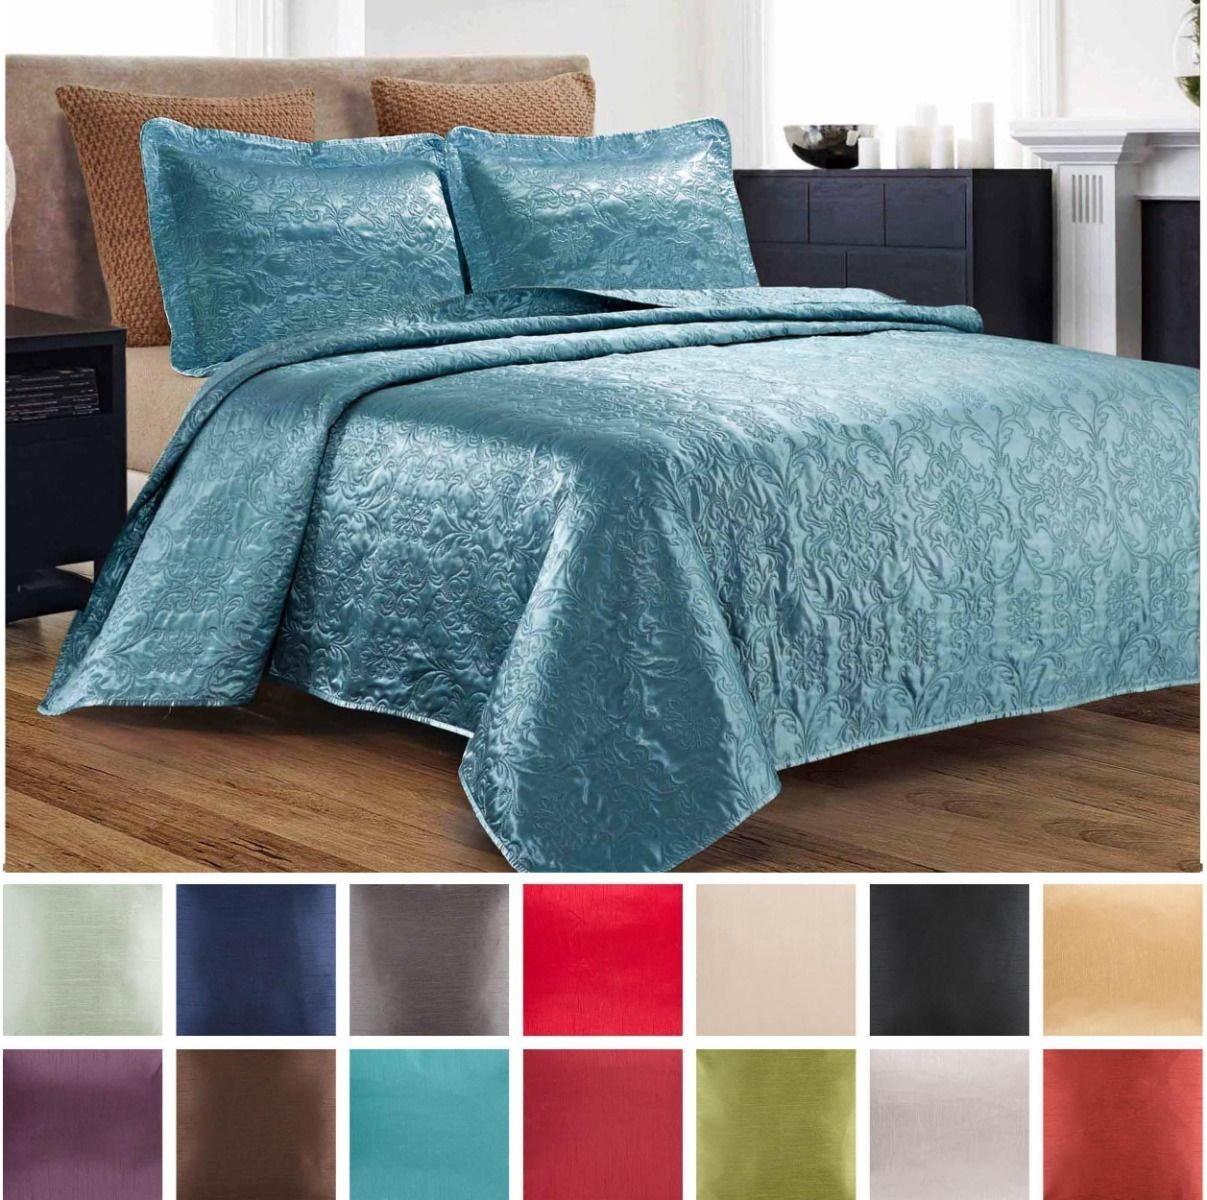 3 Piece Silky Satin Quilted Bedspread Coverlet Set King Queen Size Colors Brown Bed Spreads Quilted Bedspreads Satin Quilt